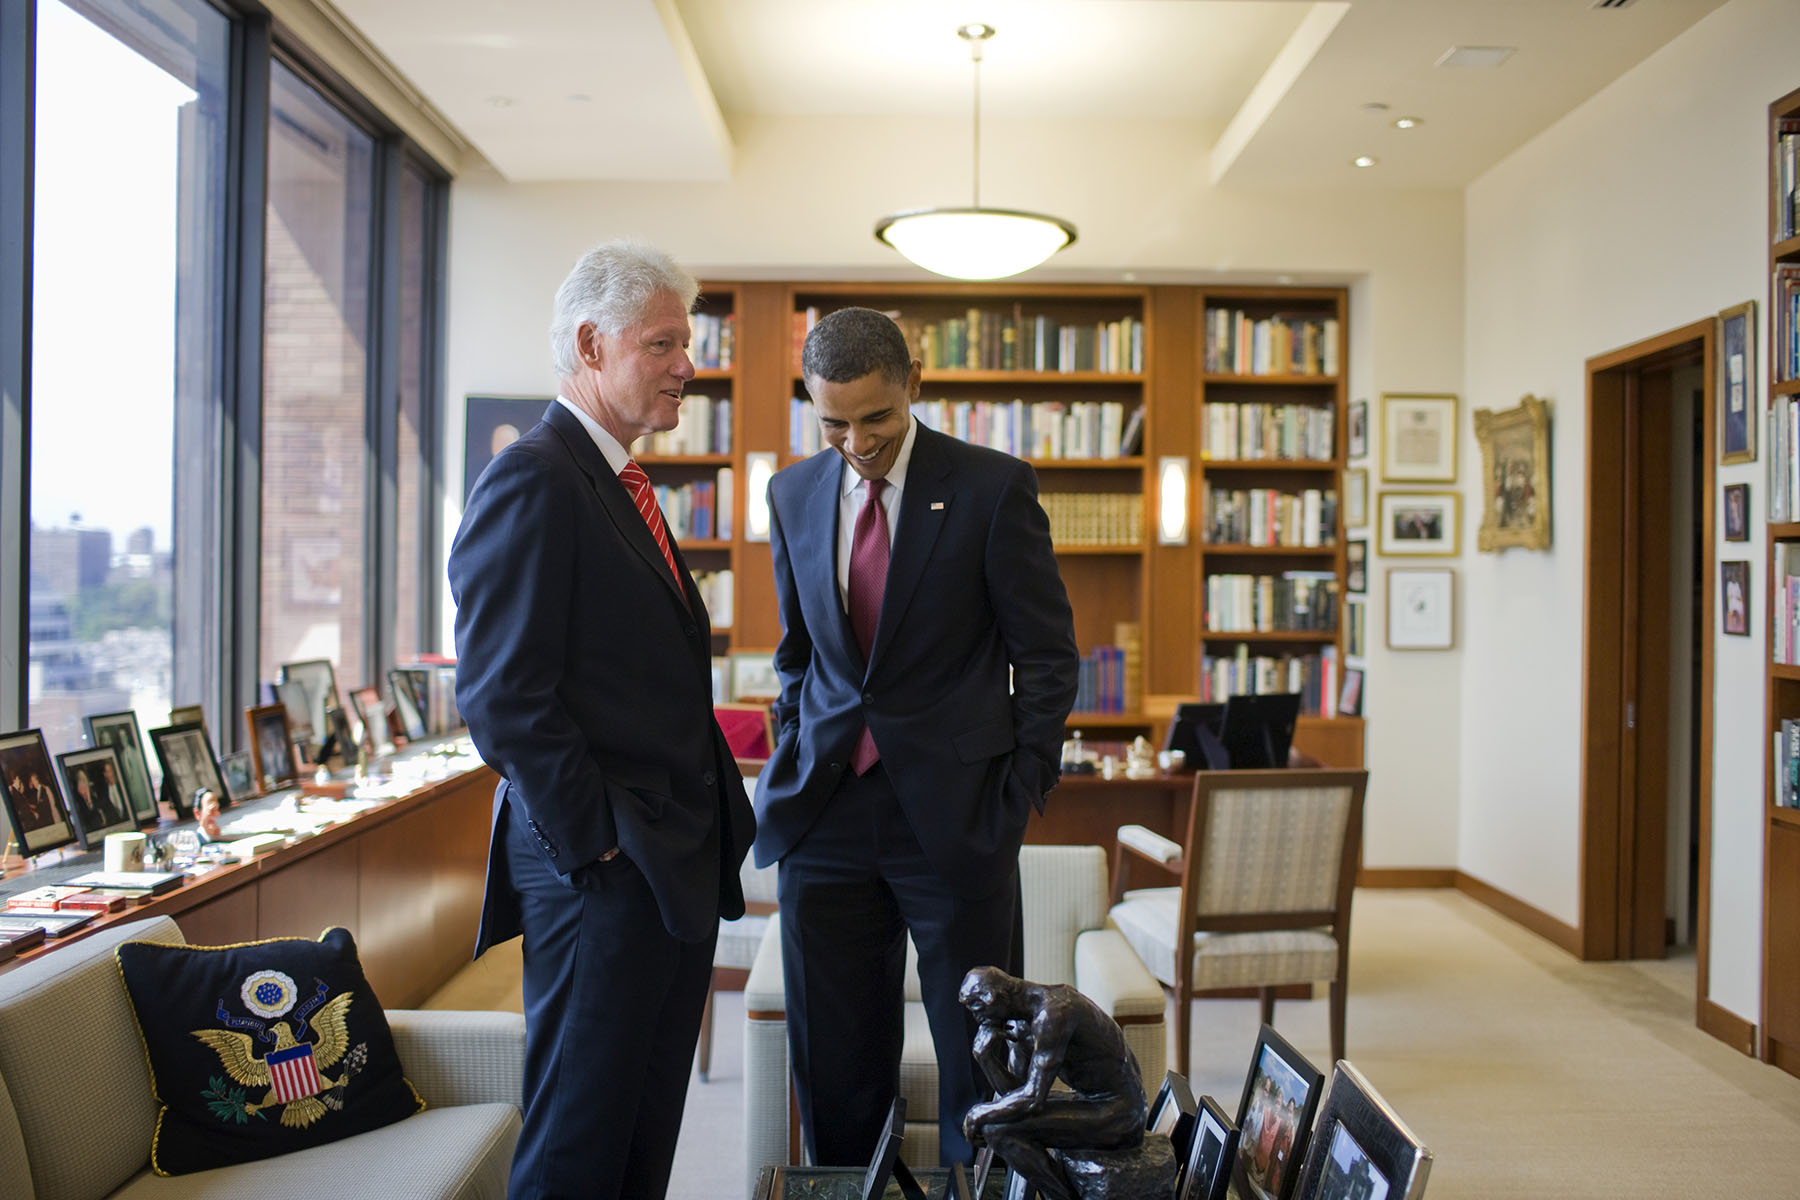 Democratic presidential candidate Sen. Barack Obama, D-Ill., meets with former President Bill Clinton in his New York office.Photo by Brooks Kraft